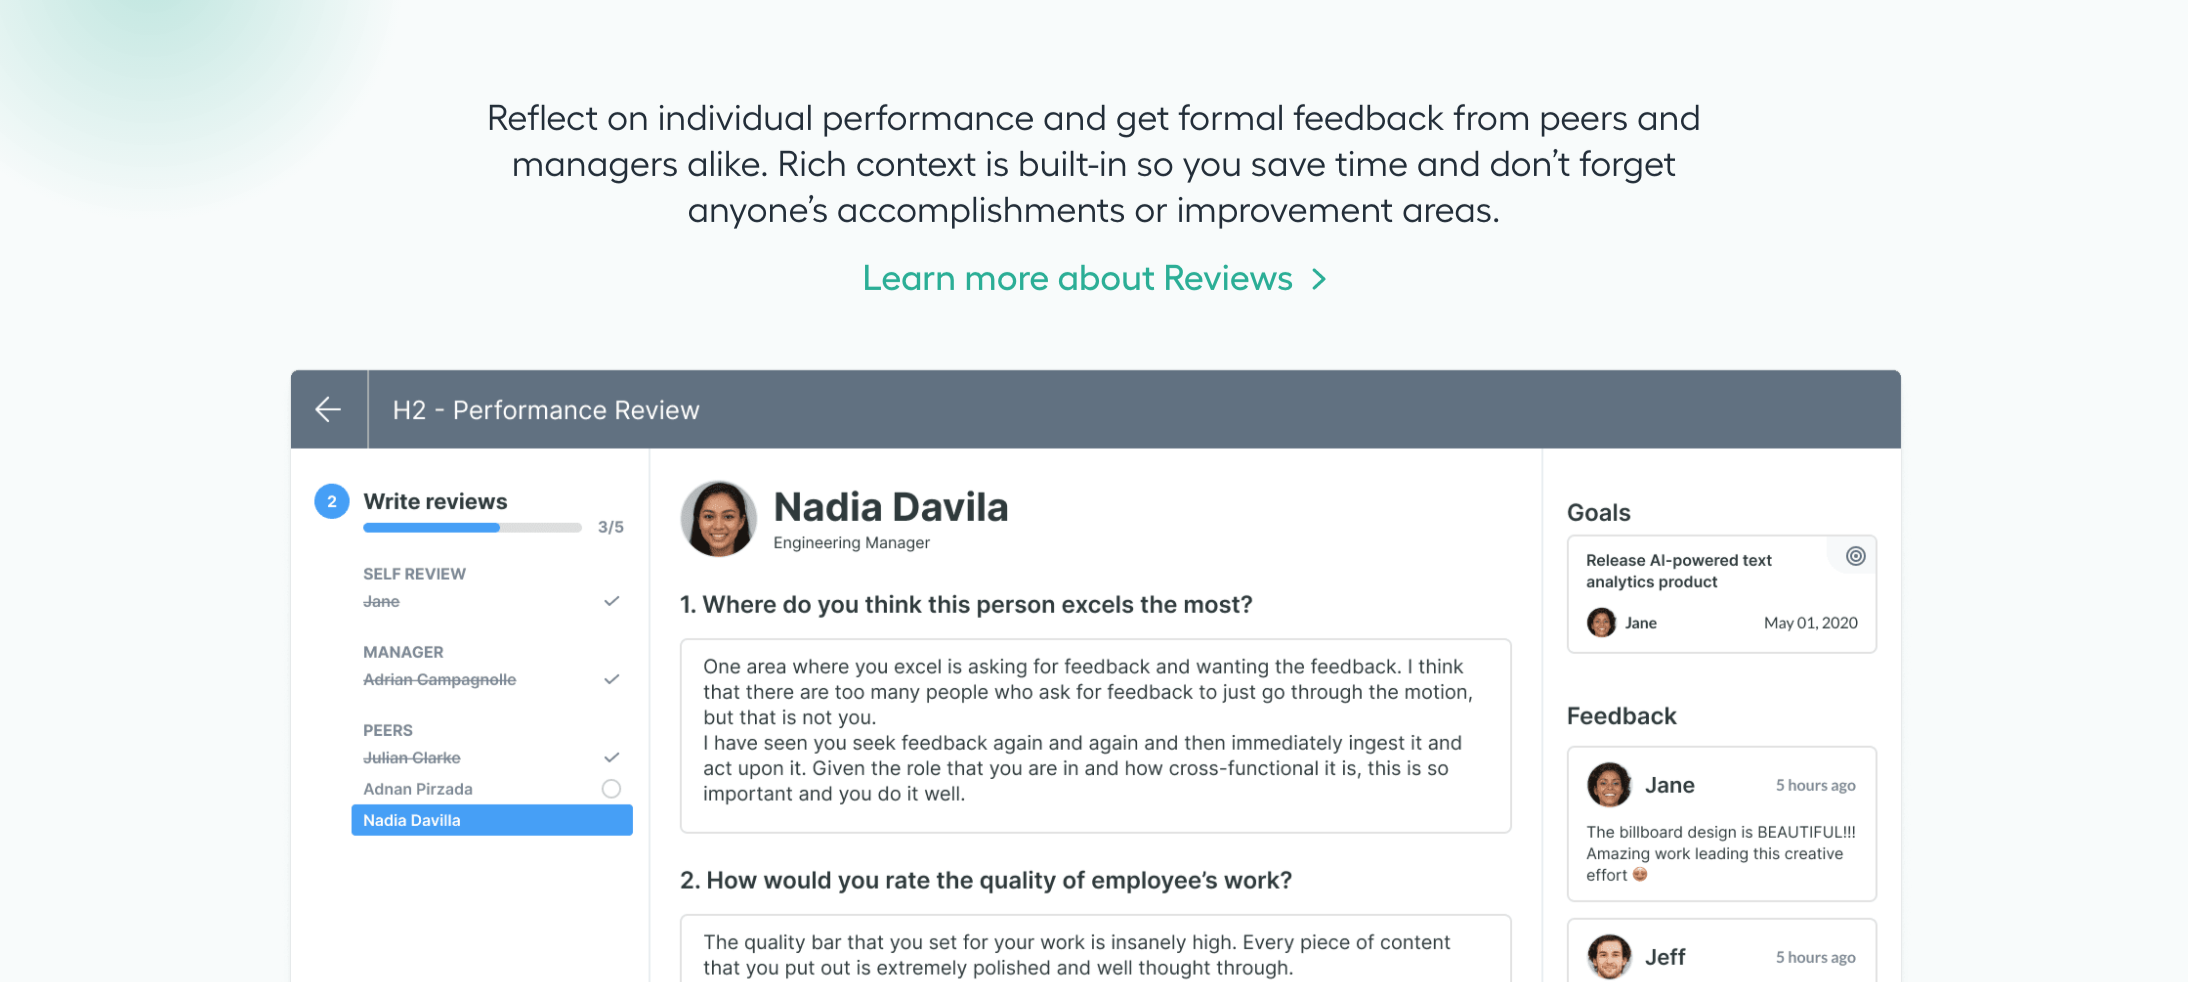 Performance review page of Lattice